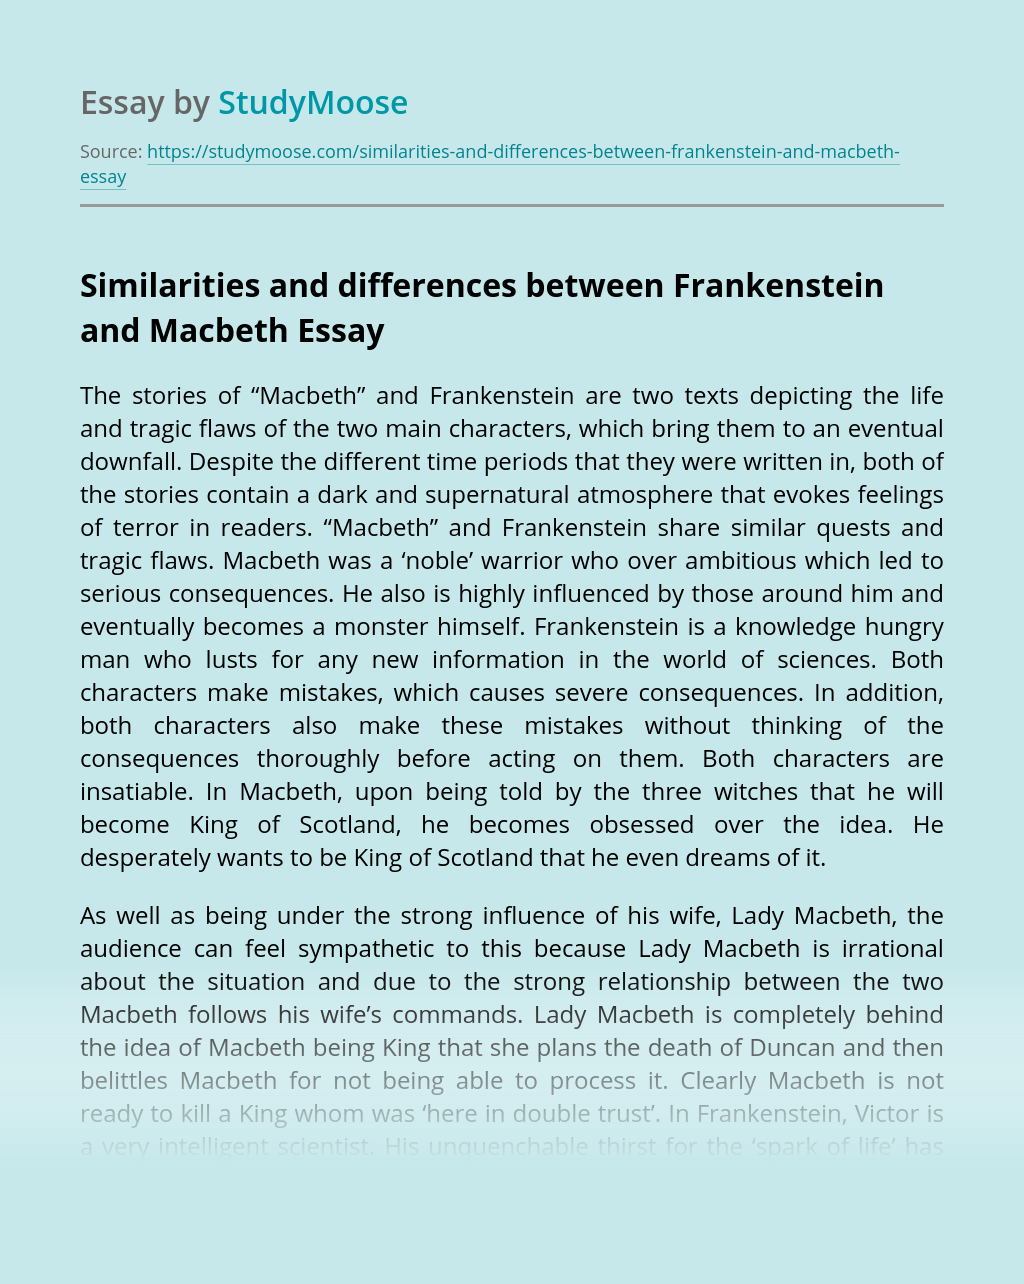 Similarities and differences between Frankenstein and Macbeth